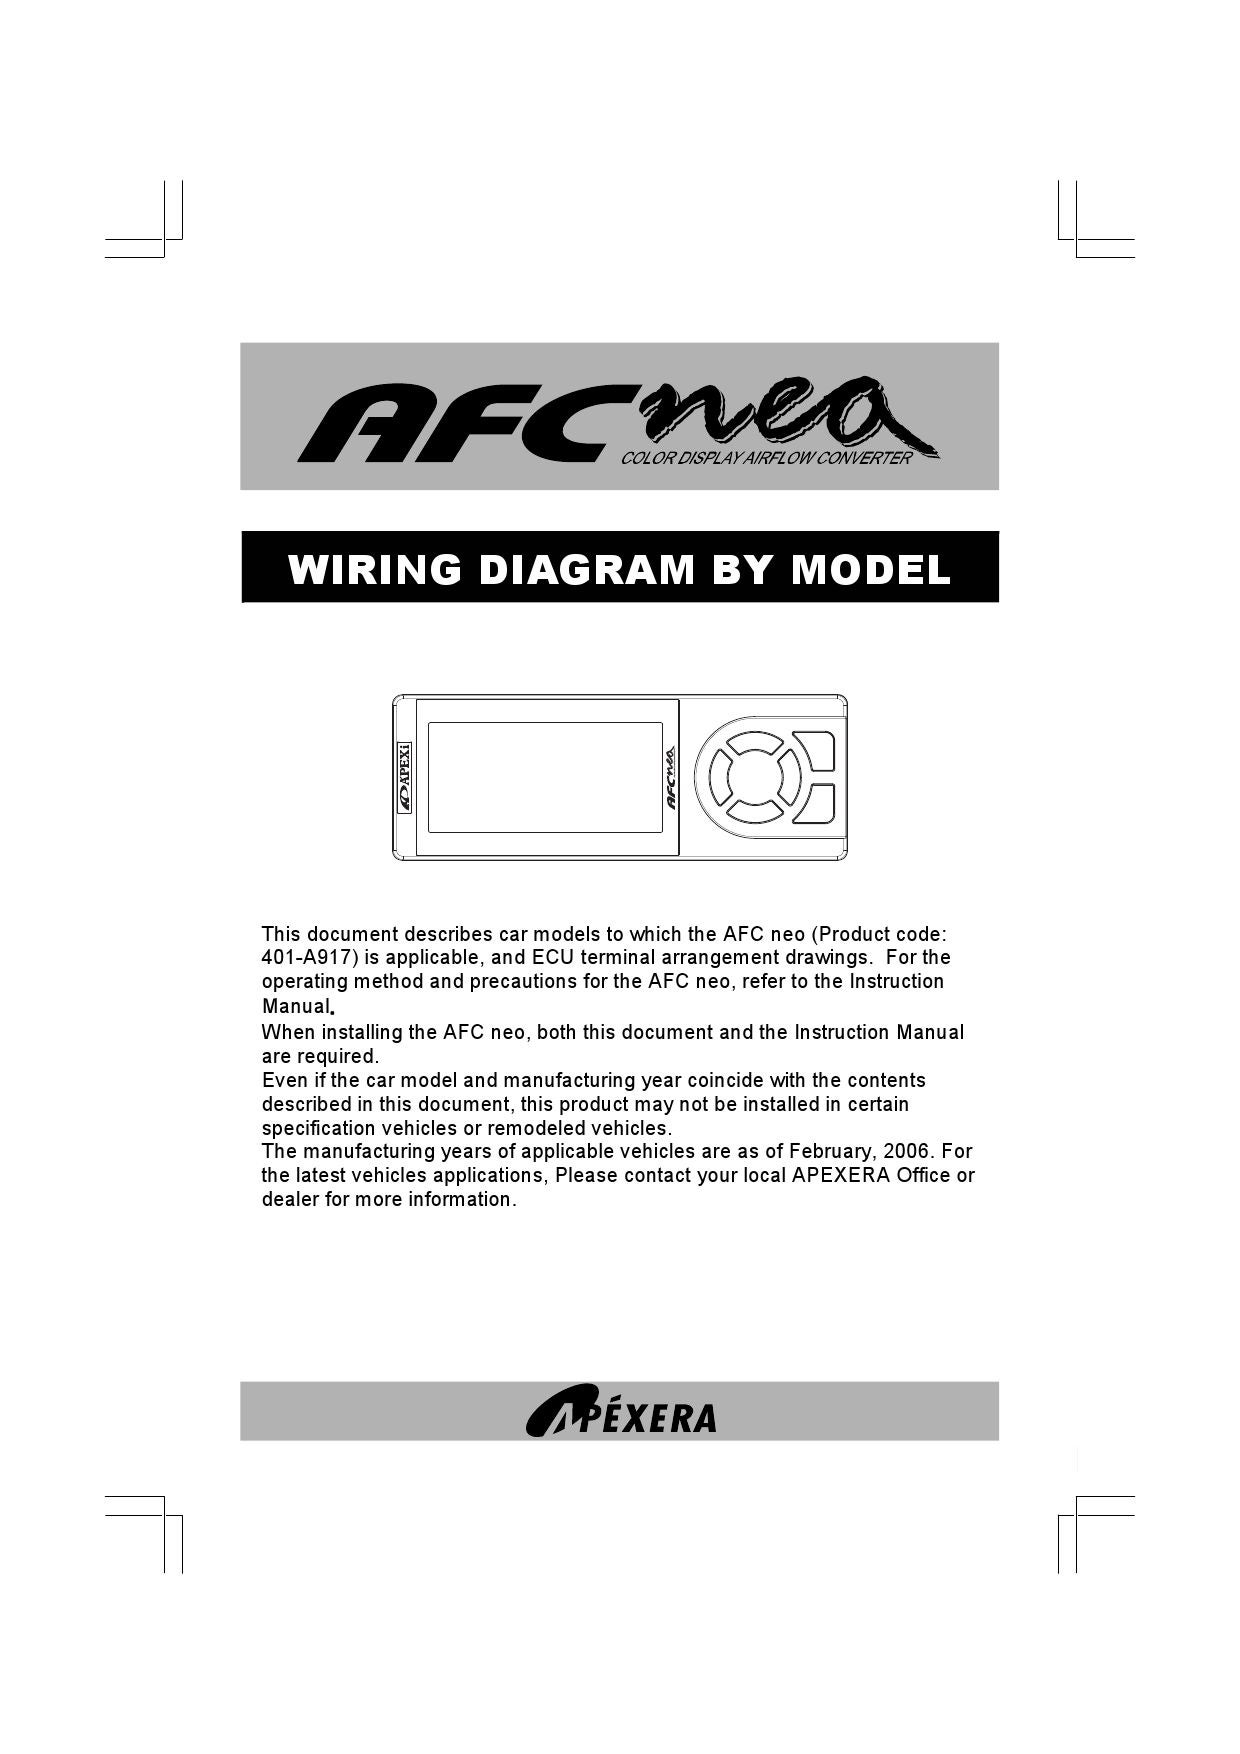 Daihatsu Mira Ef Wiring Diagram | Wiring Diagram on relay diagram, roof diagram, junction box diagram, circuit breaker diagram, control box diagram, element box diagram, fuel pump diagram, engine diagram, oxygen box diagram, light box diagram, 2002 sebring box diagram, fuel tank sending unit diagram, power box diagram, meter box diagram, wiring box diagram, heater box diagram, fuse line diagram, fuse tv, gear box diagram, fuse wire,